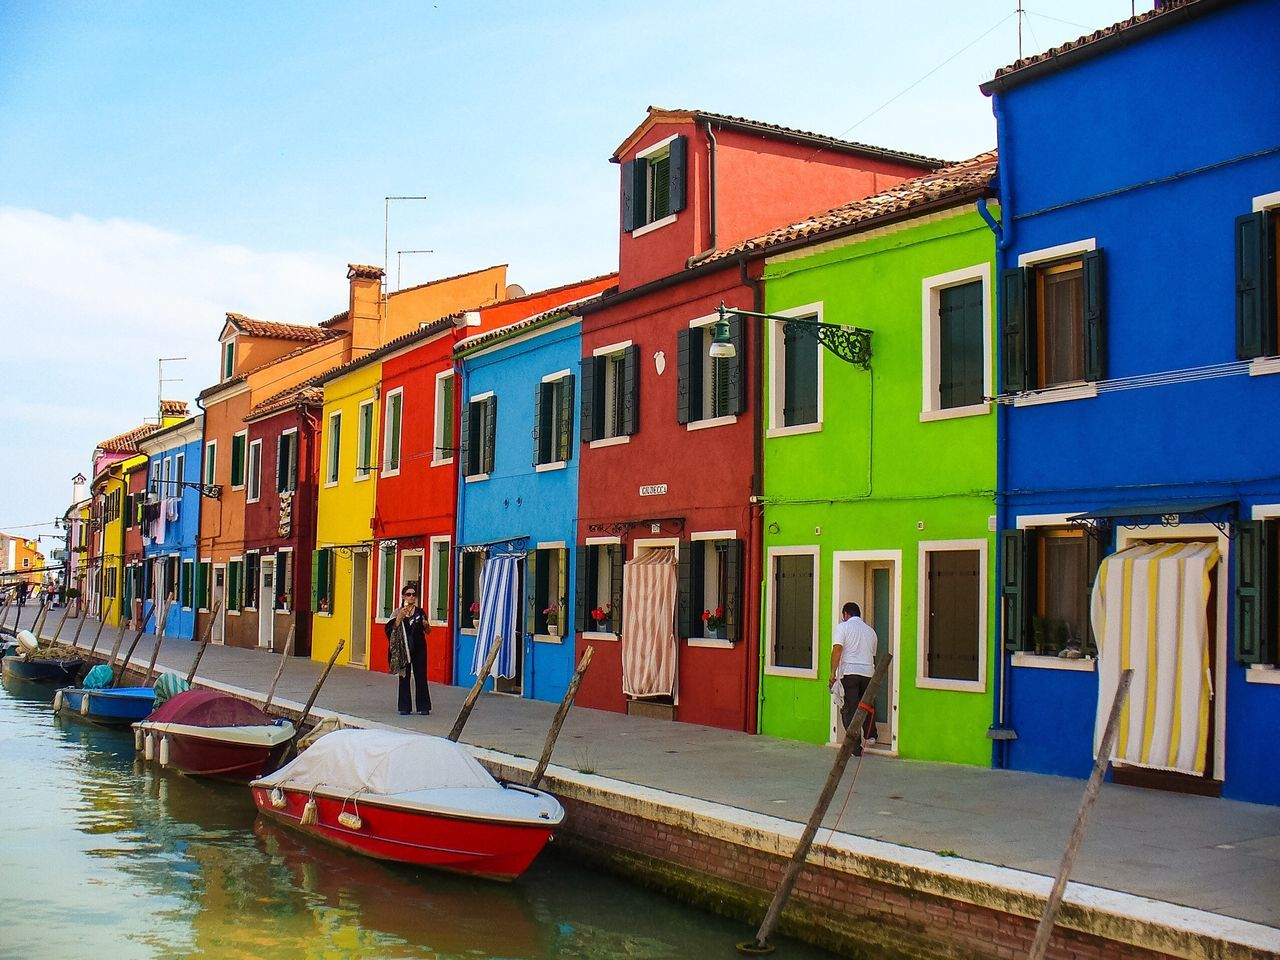 Burano Burano Island Burano, Italy Building Exterior Architecture Nautical Vessel Transportation Built Structure Mode Of Transport Outdoors Sky Moored Real People Water Men Day Vibrant House Colorful Houses Row Of Houses Home Exterior Design Home Exterior House Paint Vibrant Rows Of Things